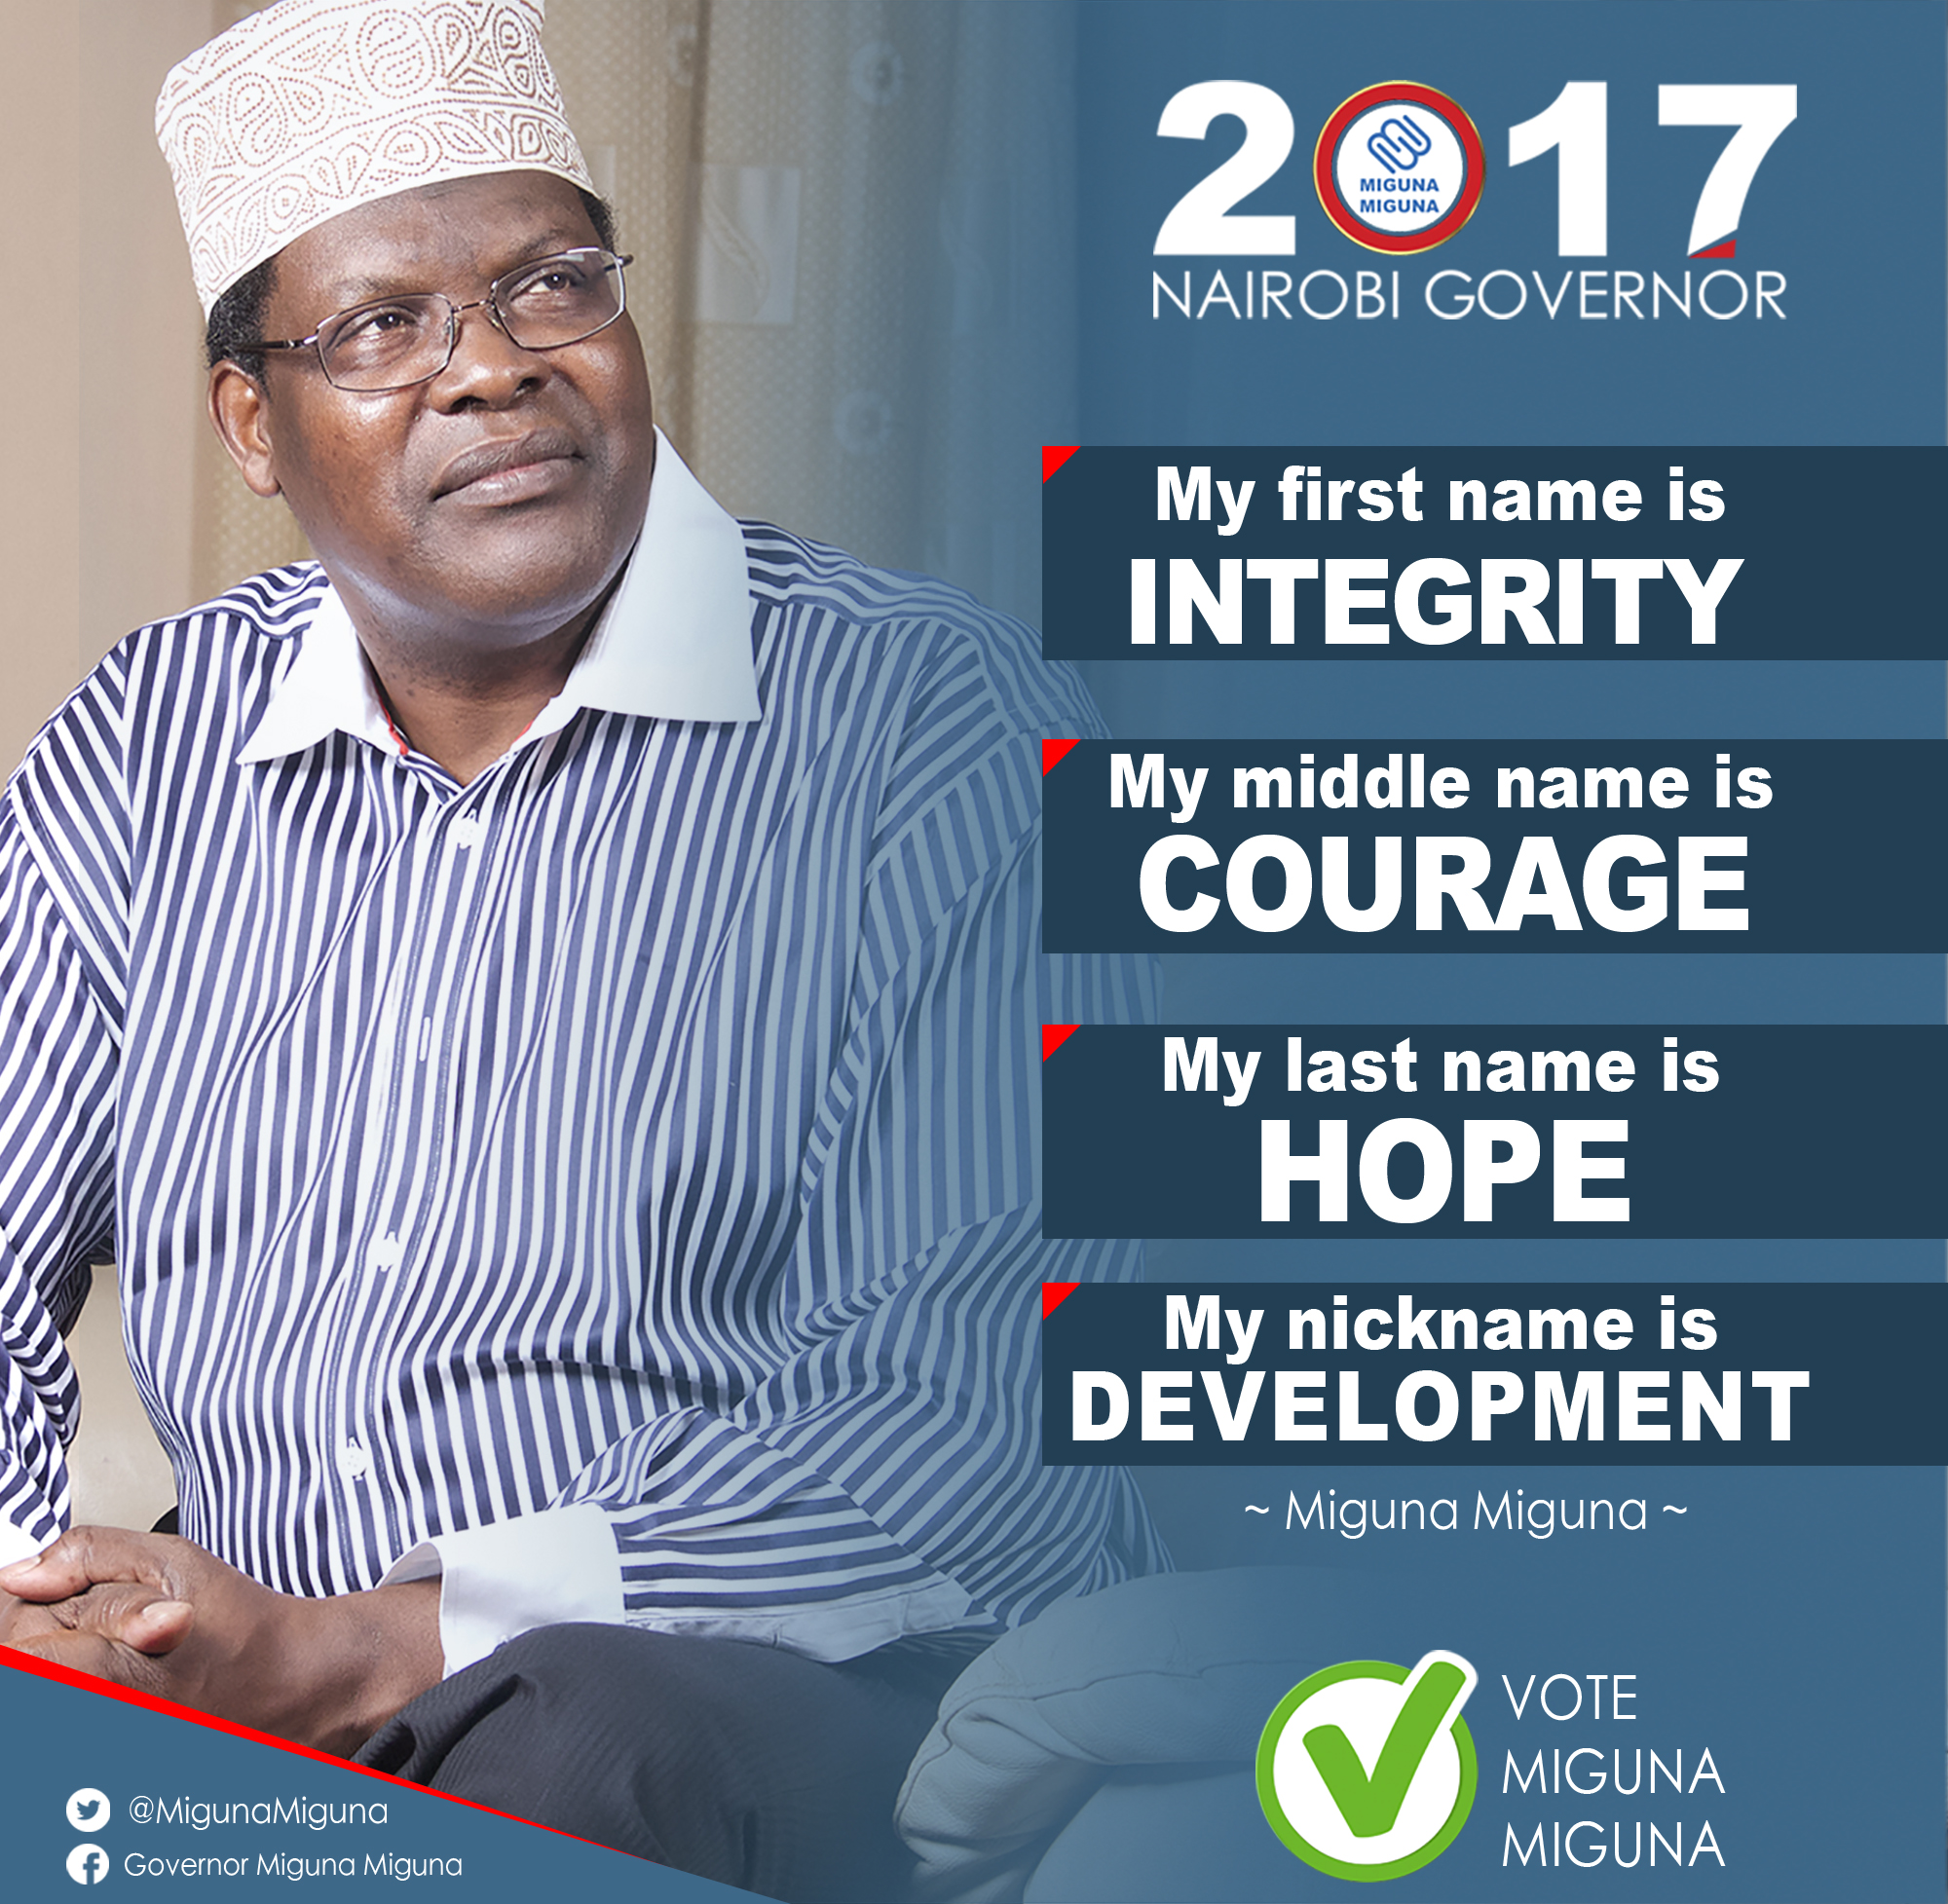 The Candidate's first name is integrity.